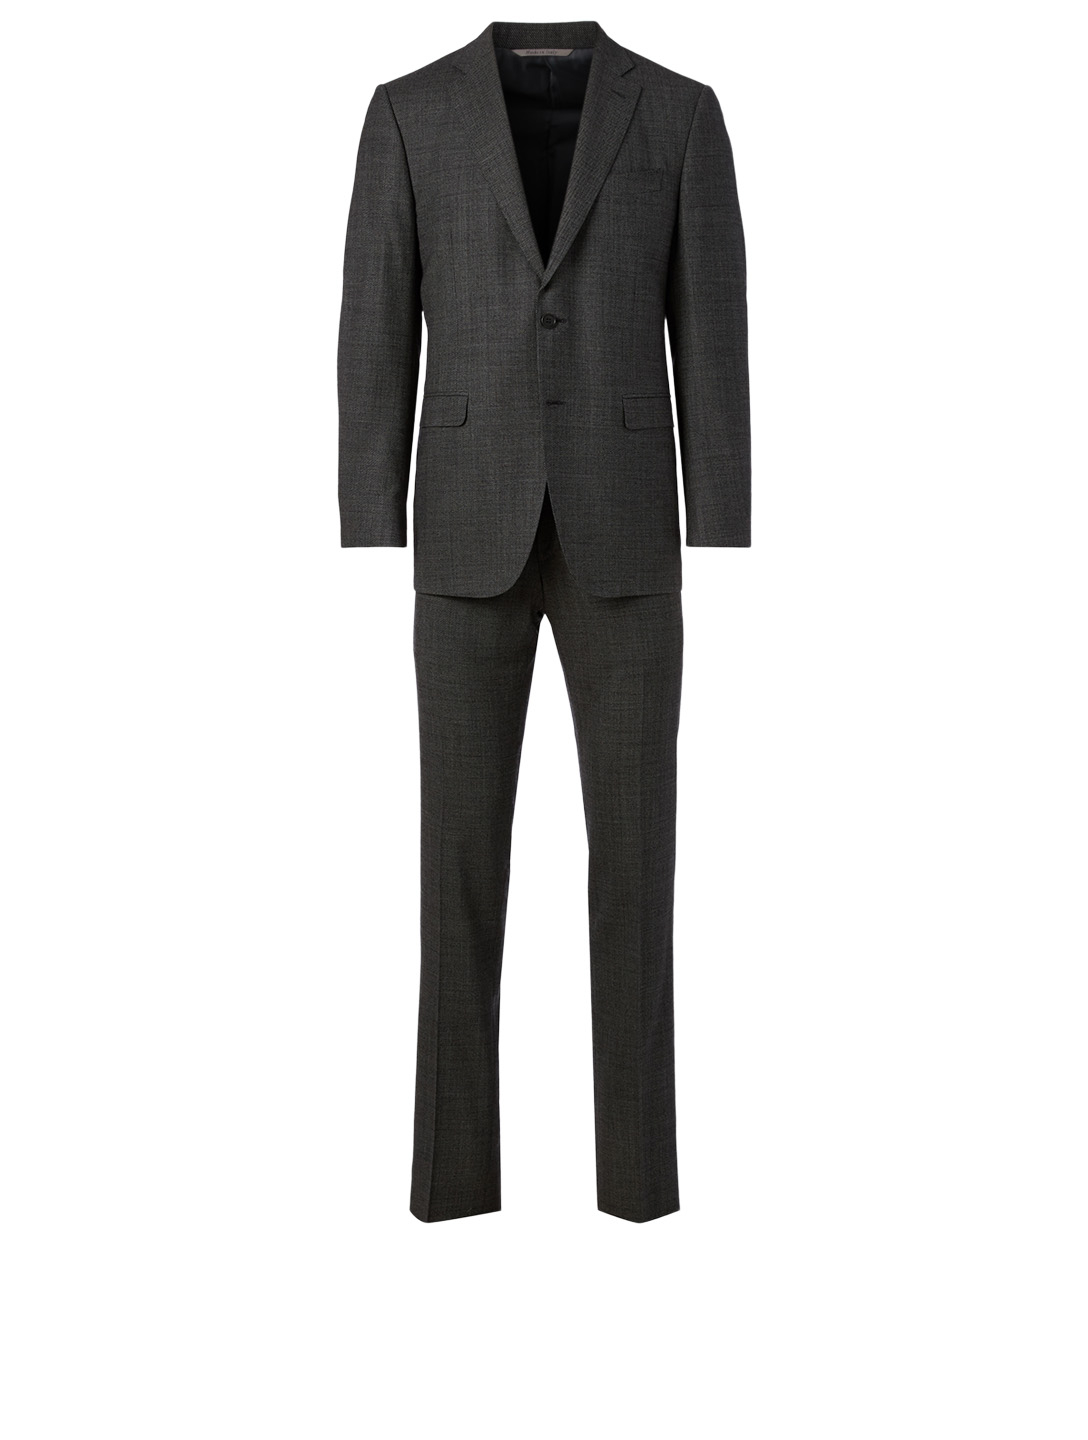 CANALI Modern Fit Wool Two-Piece Suit In Chevron Men's Black